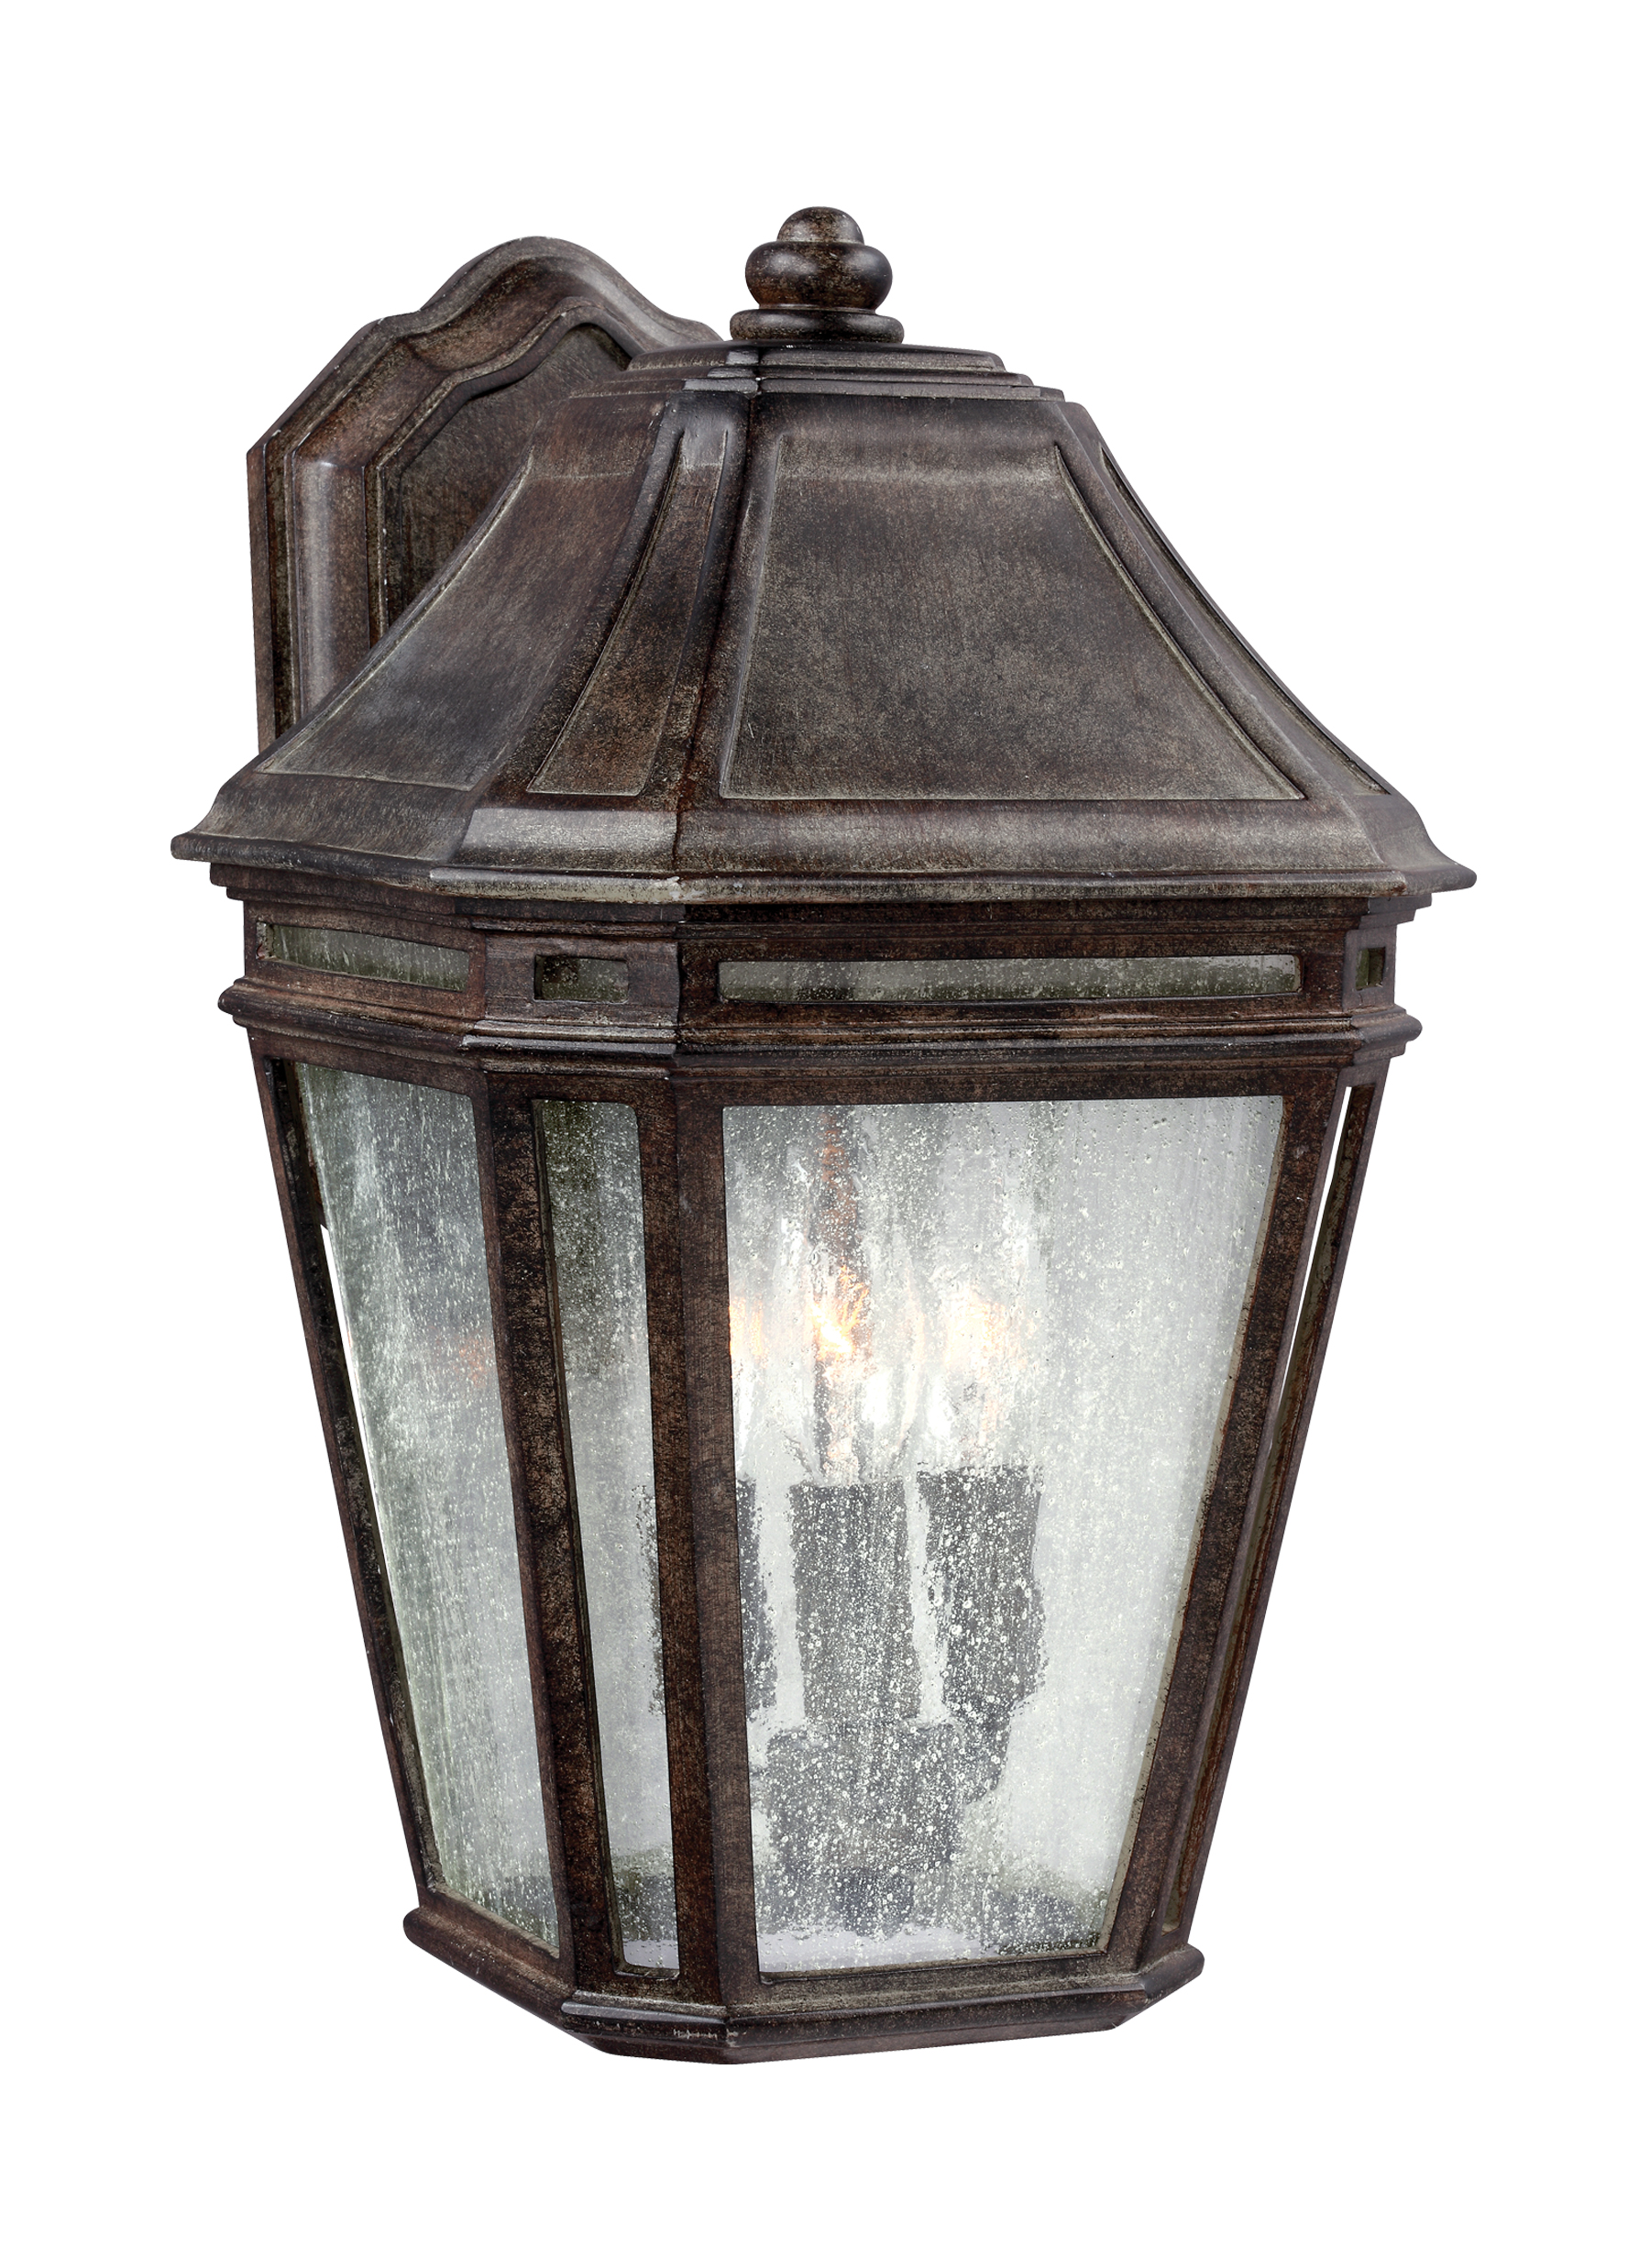 olbkledled outdoor sconceblack -   light outdoor sconce